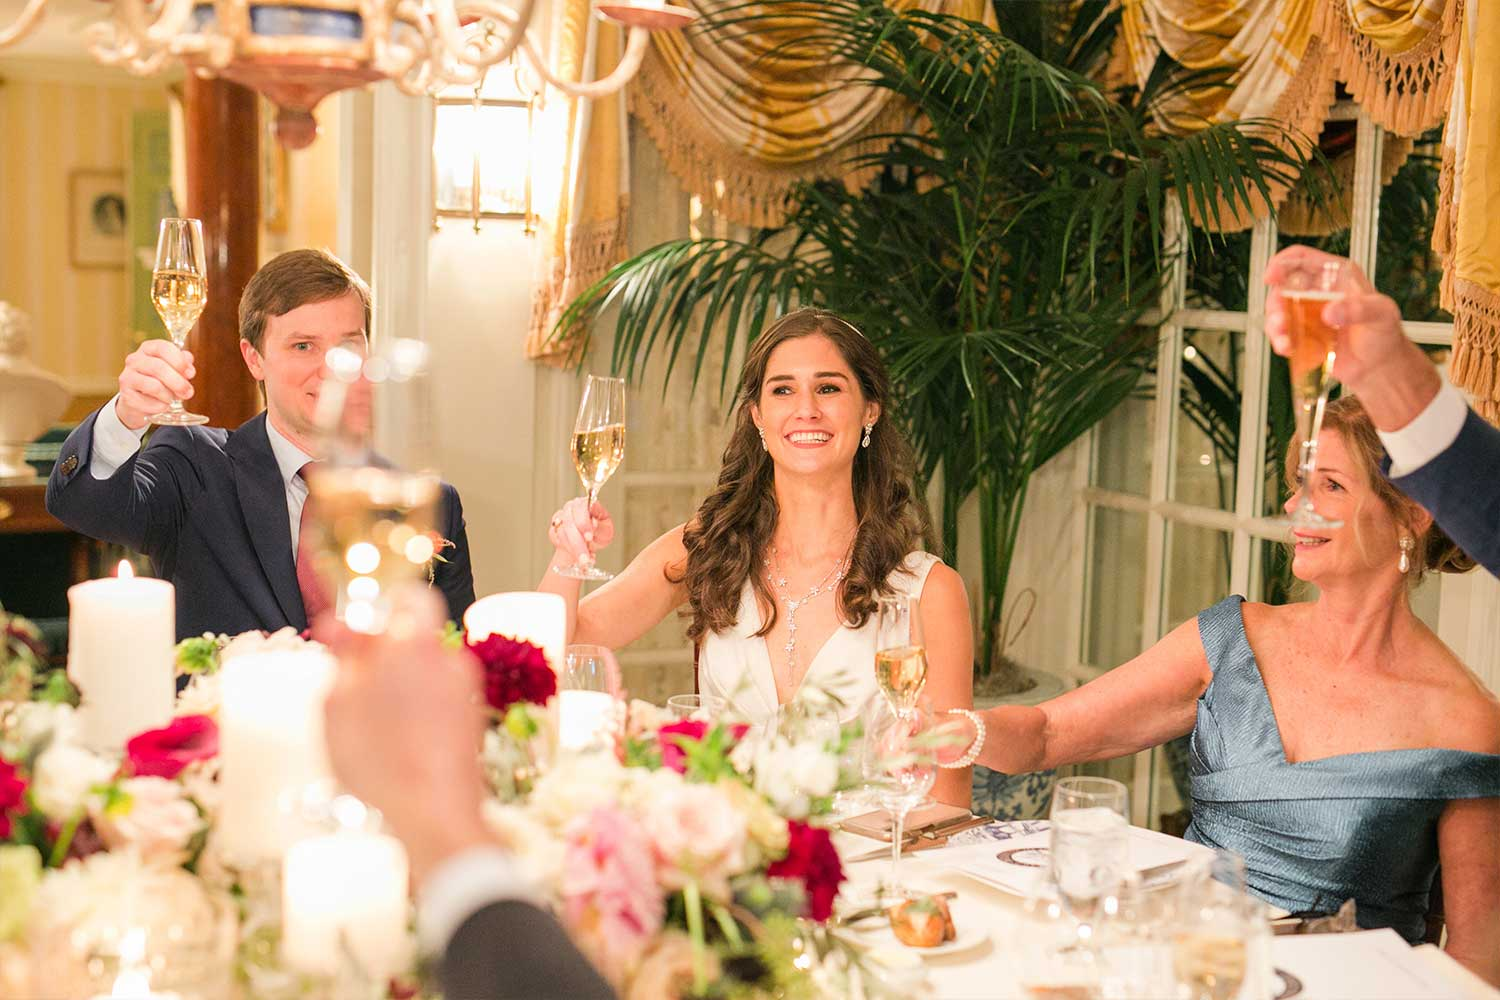 A family smiling and laughing at a wedding reception in the dining room of the Claiborne House.